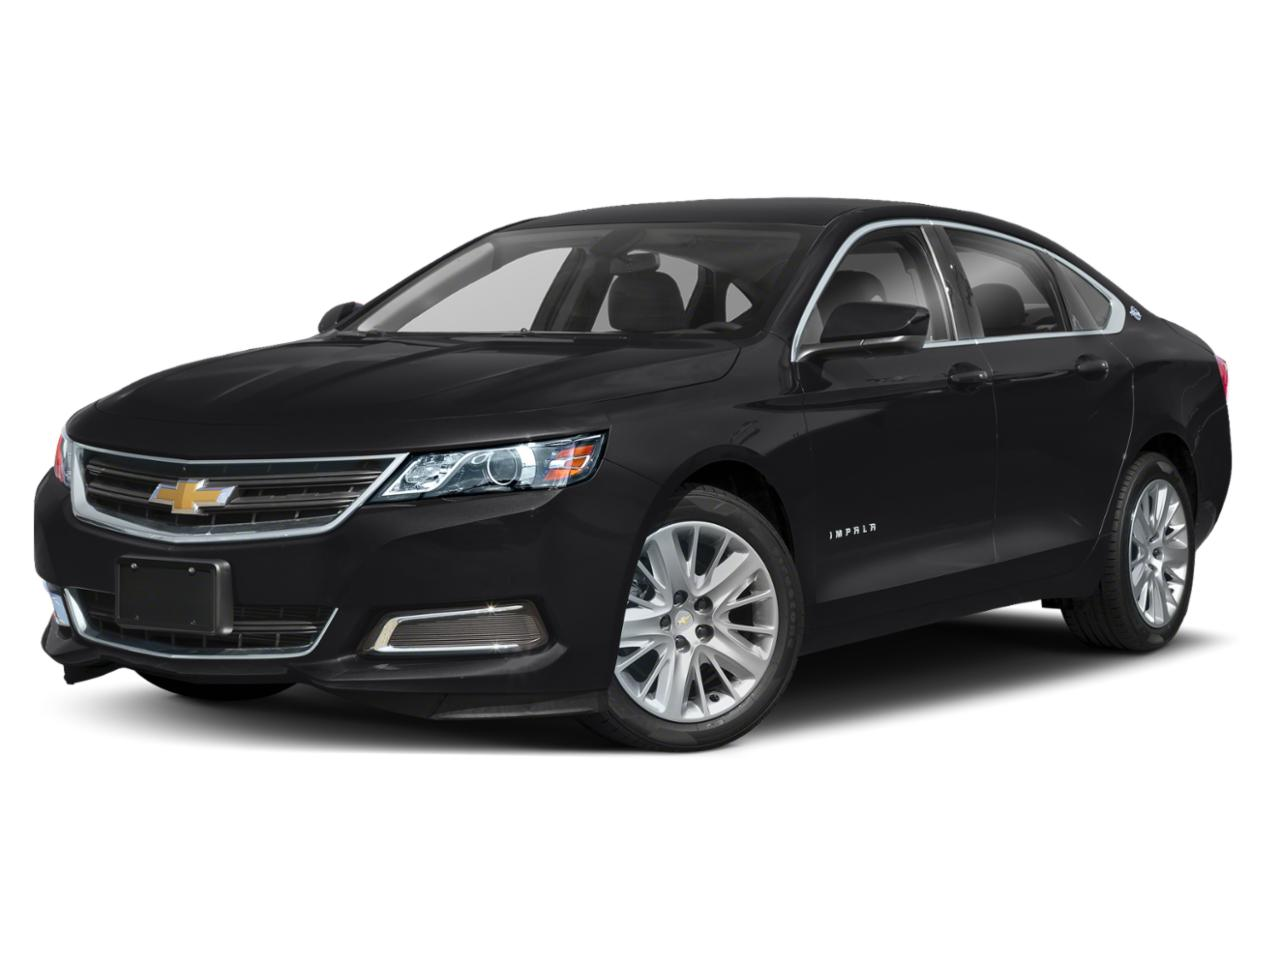 2019 Chevrolet Impala Vehicle Photo in Little Falls, NJ 07424